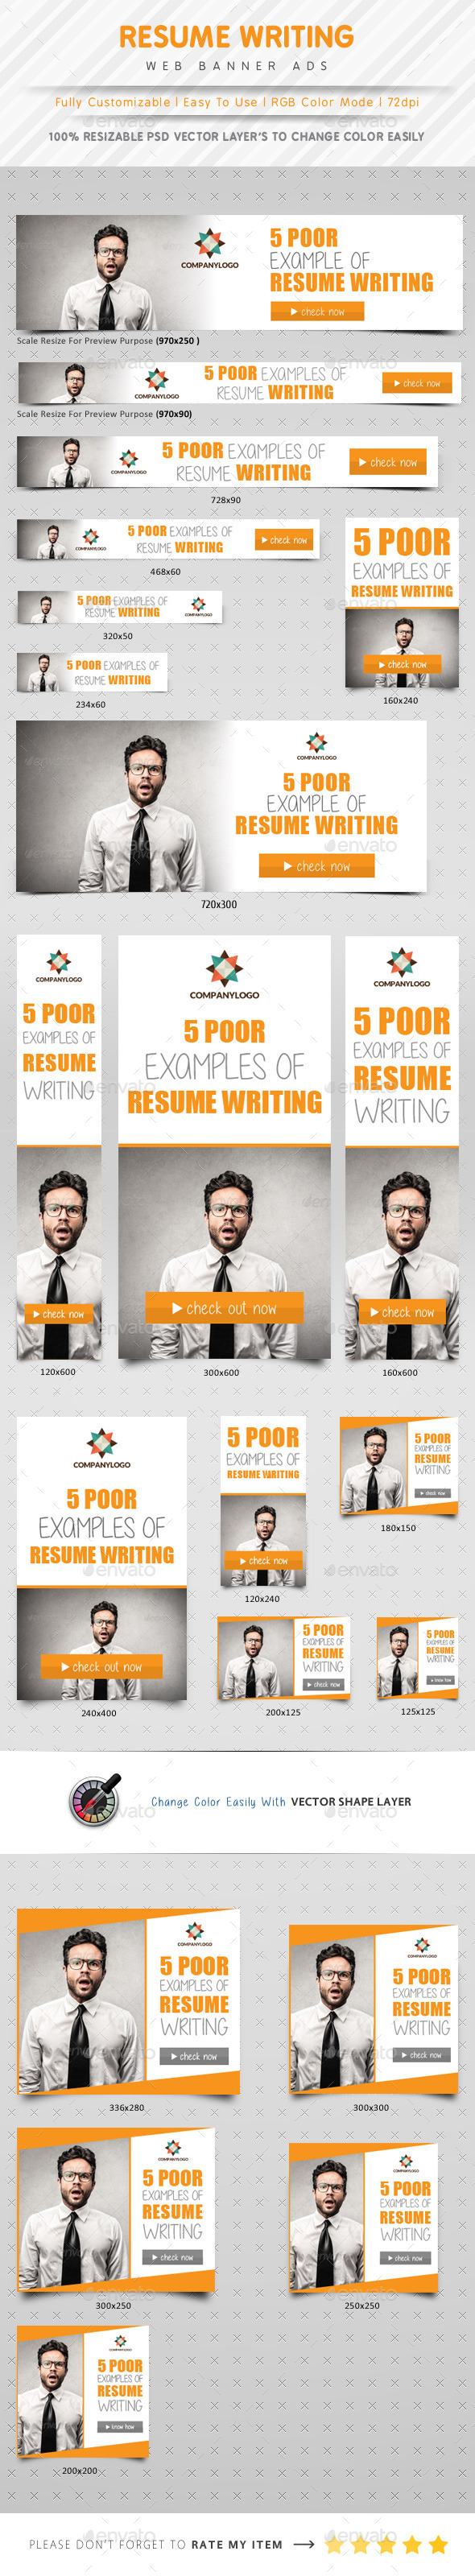 Resume Writing Web Banner Ads - Banners & Ads Web Elements